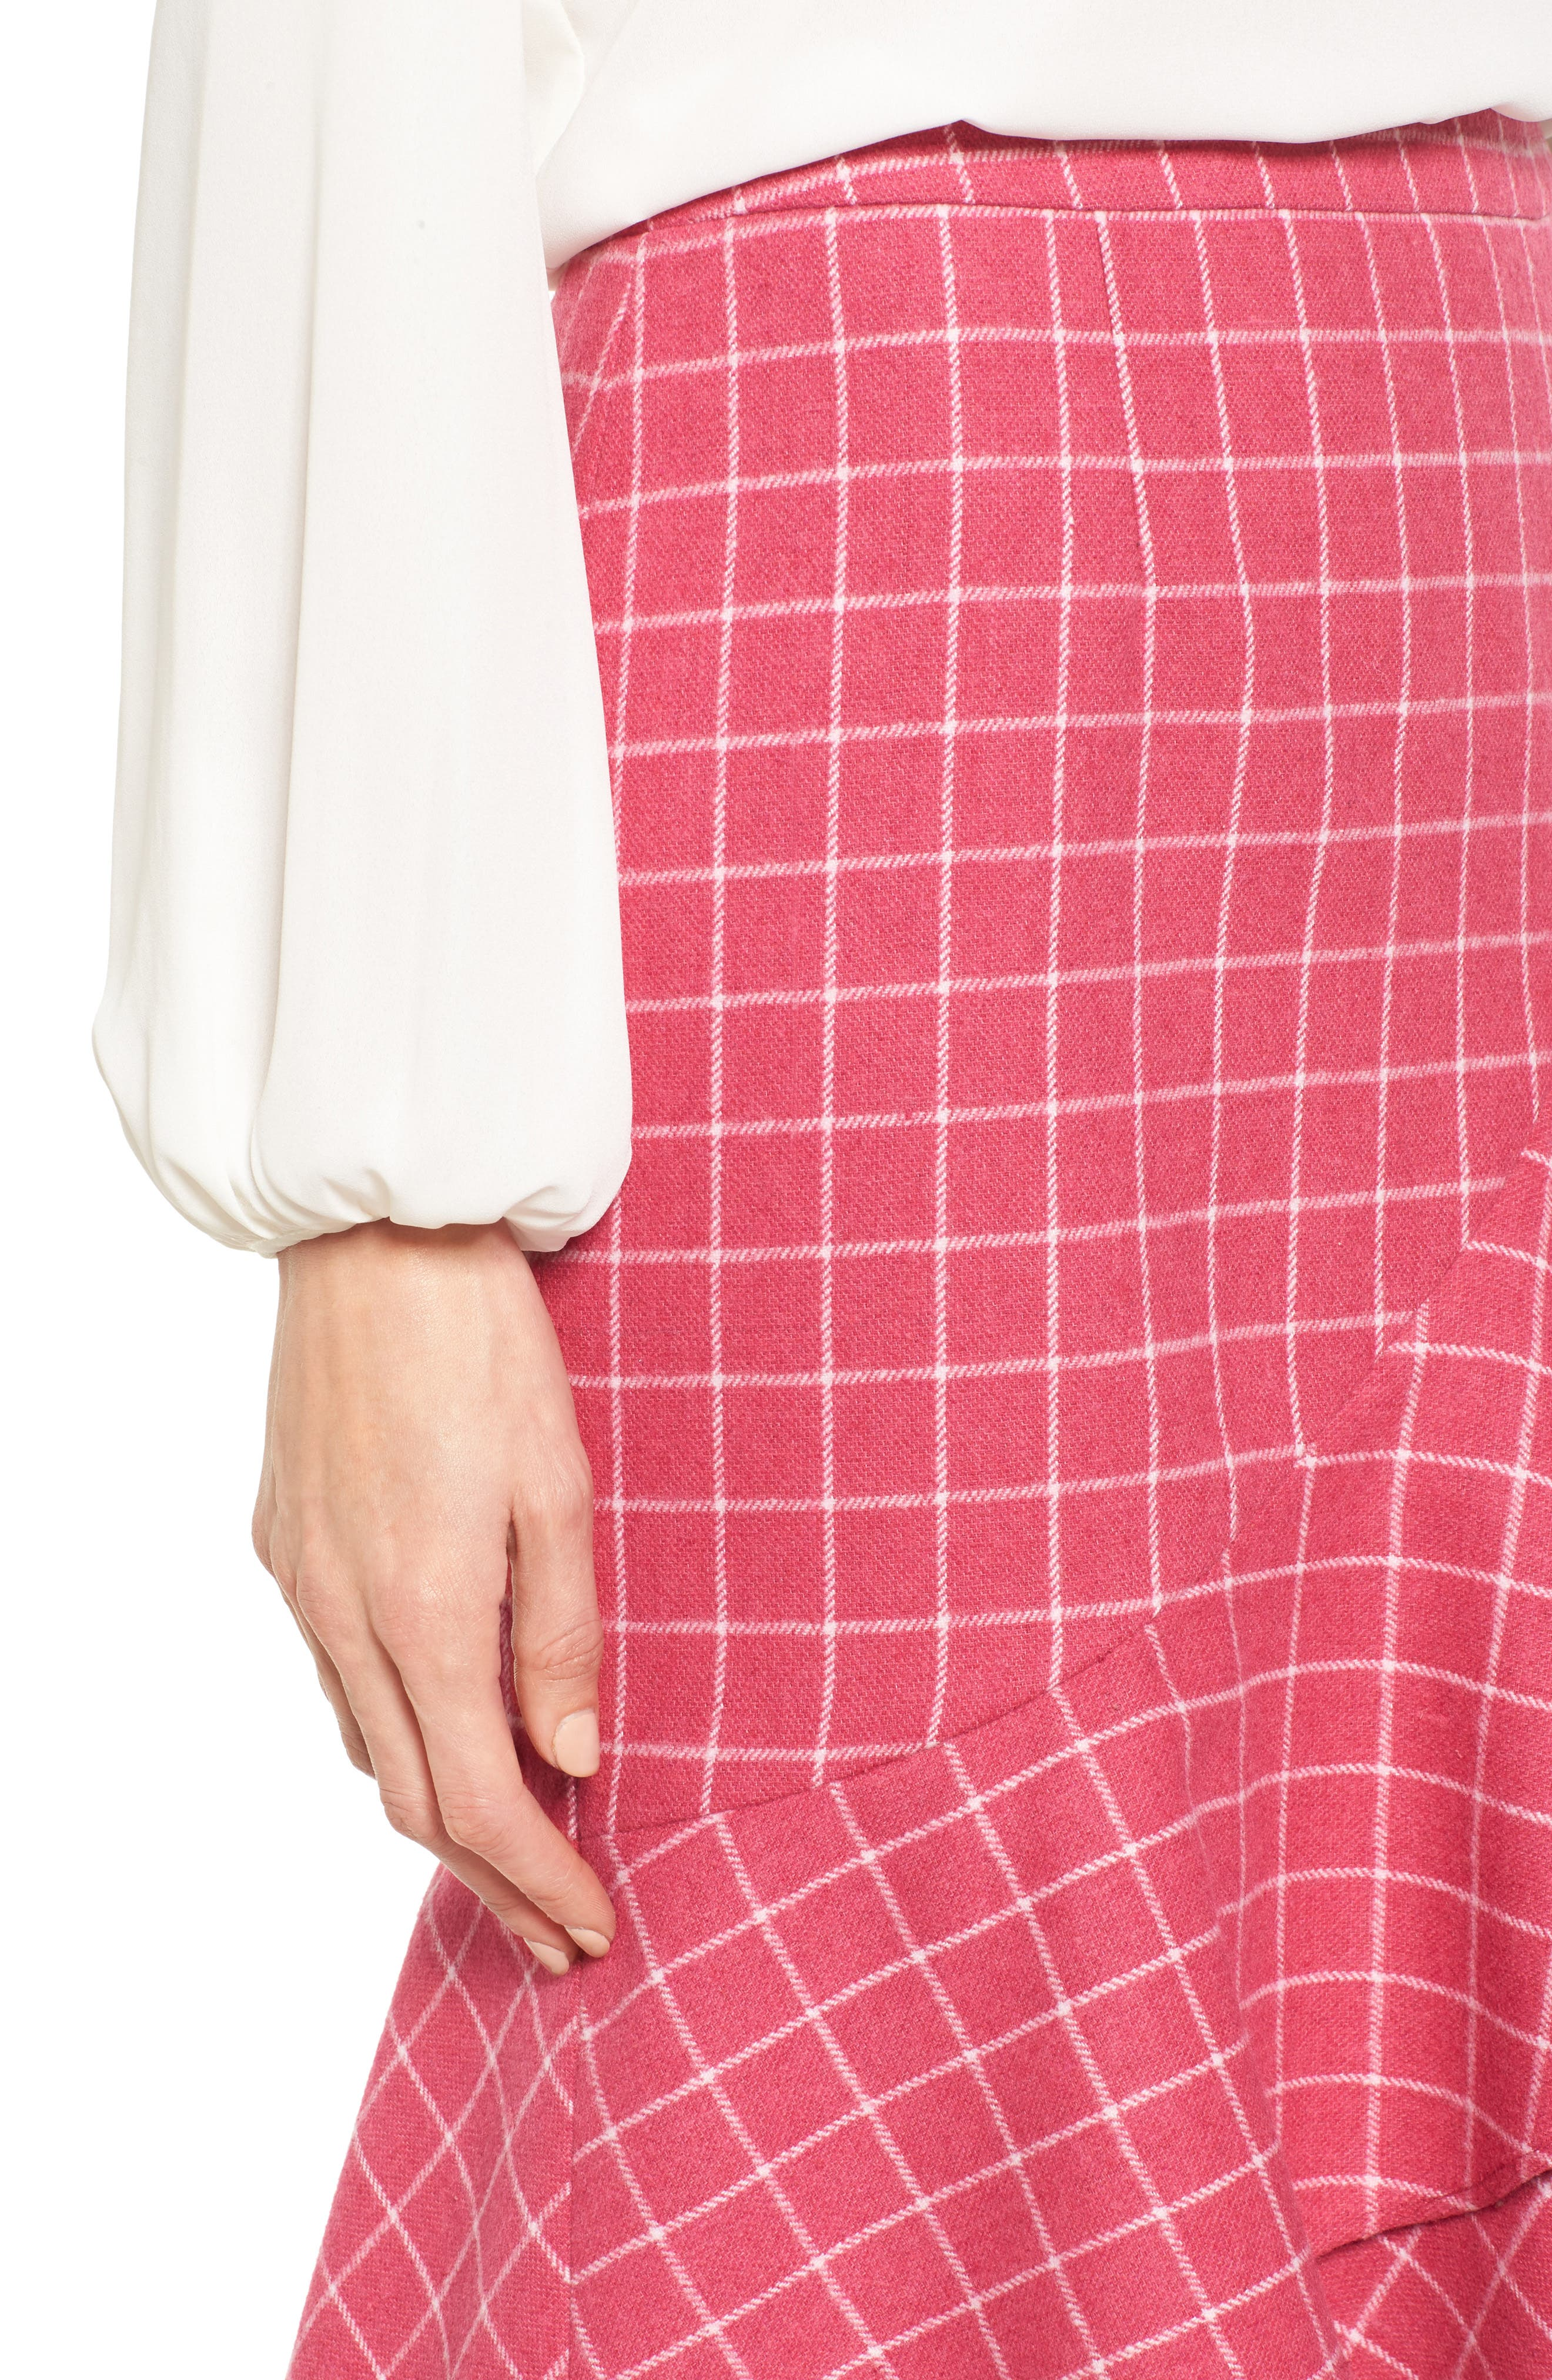 Windowpane Print Ruffle Skirt,                             Alternate thumbnail 4, color,                             Pink Windowpane